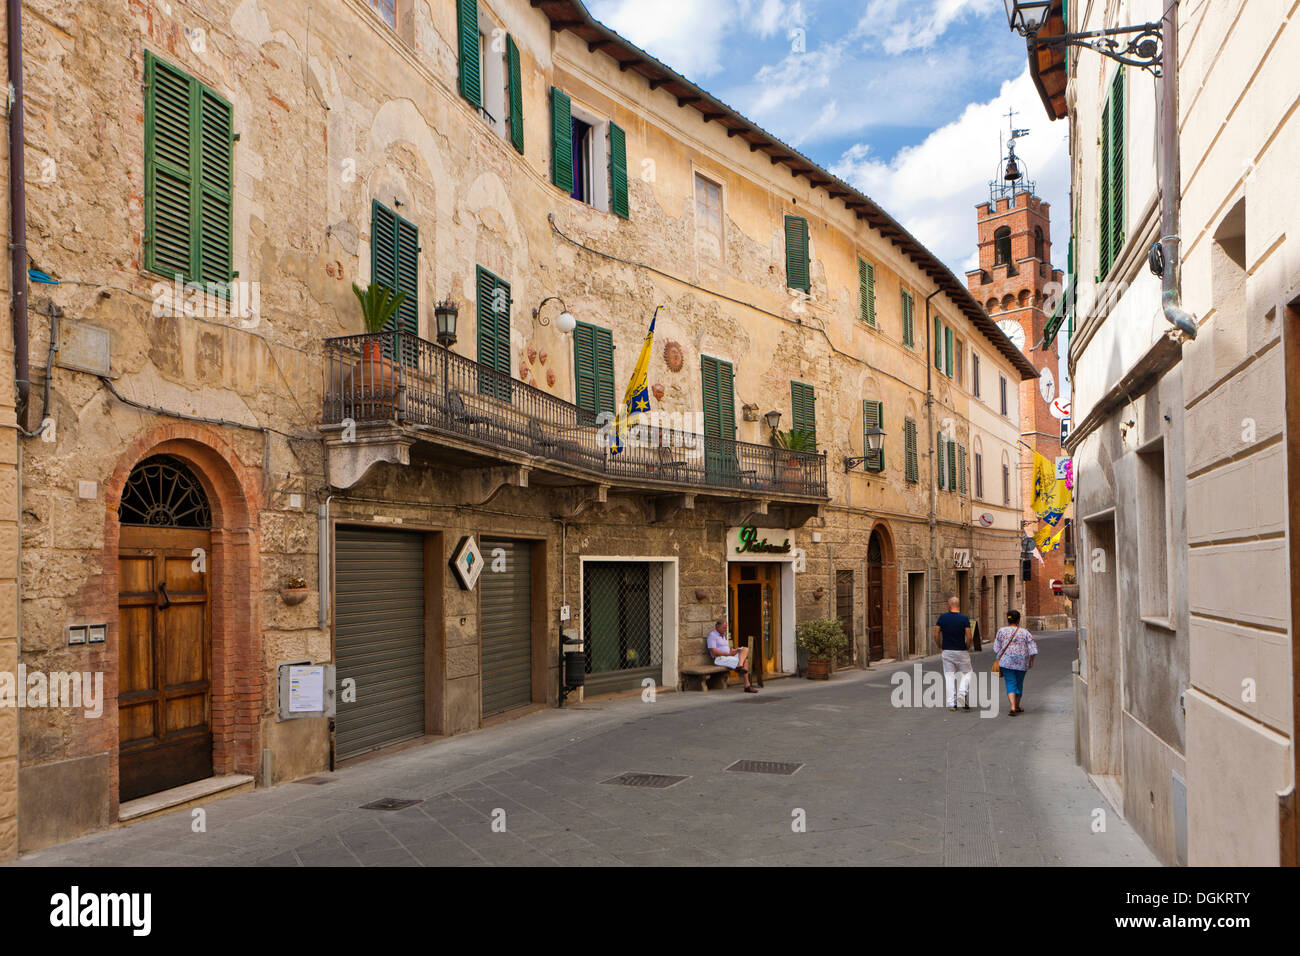 Street and houses in the hill town of Asciano. - Stock Image